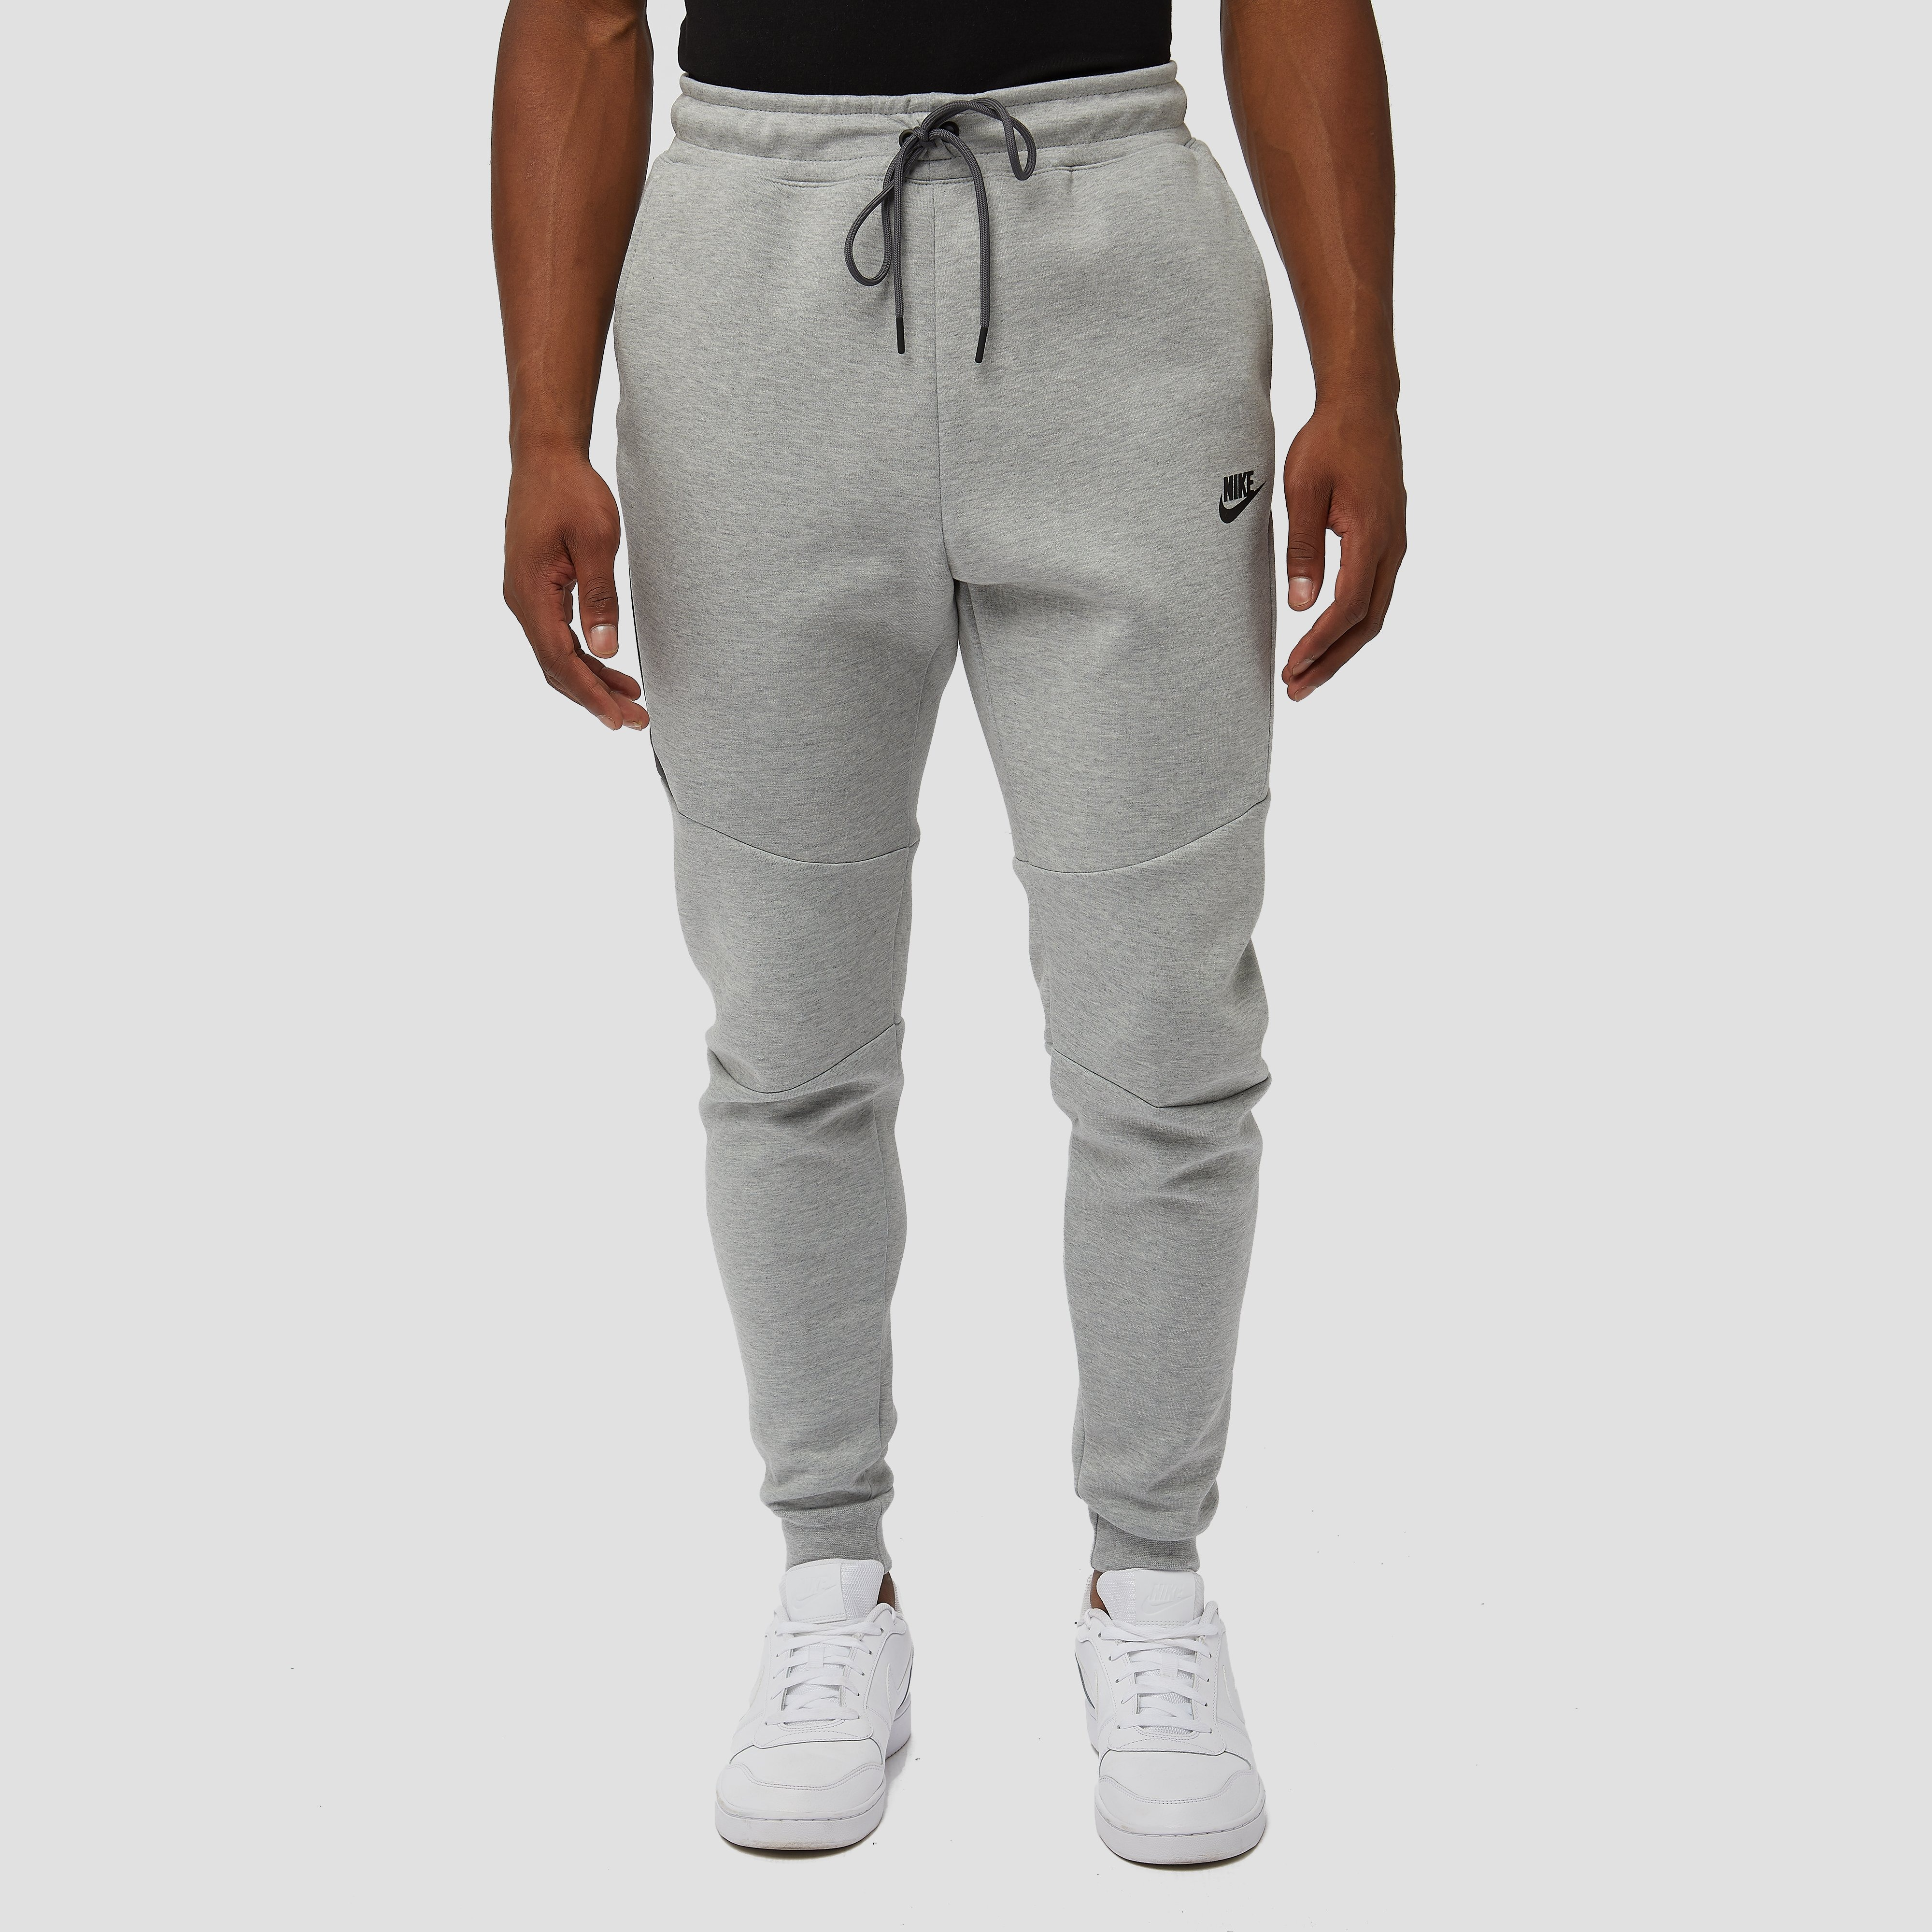 NIKE SPORTSWEAR TECH FLEECE JOGGINGBROEK GRIJS HEREN | Perrysport